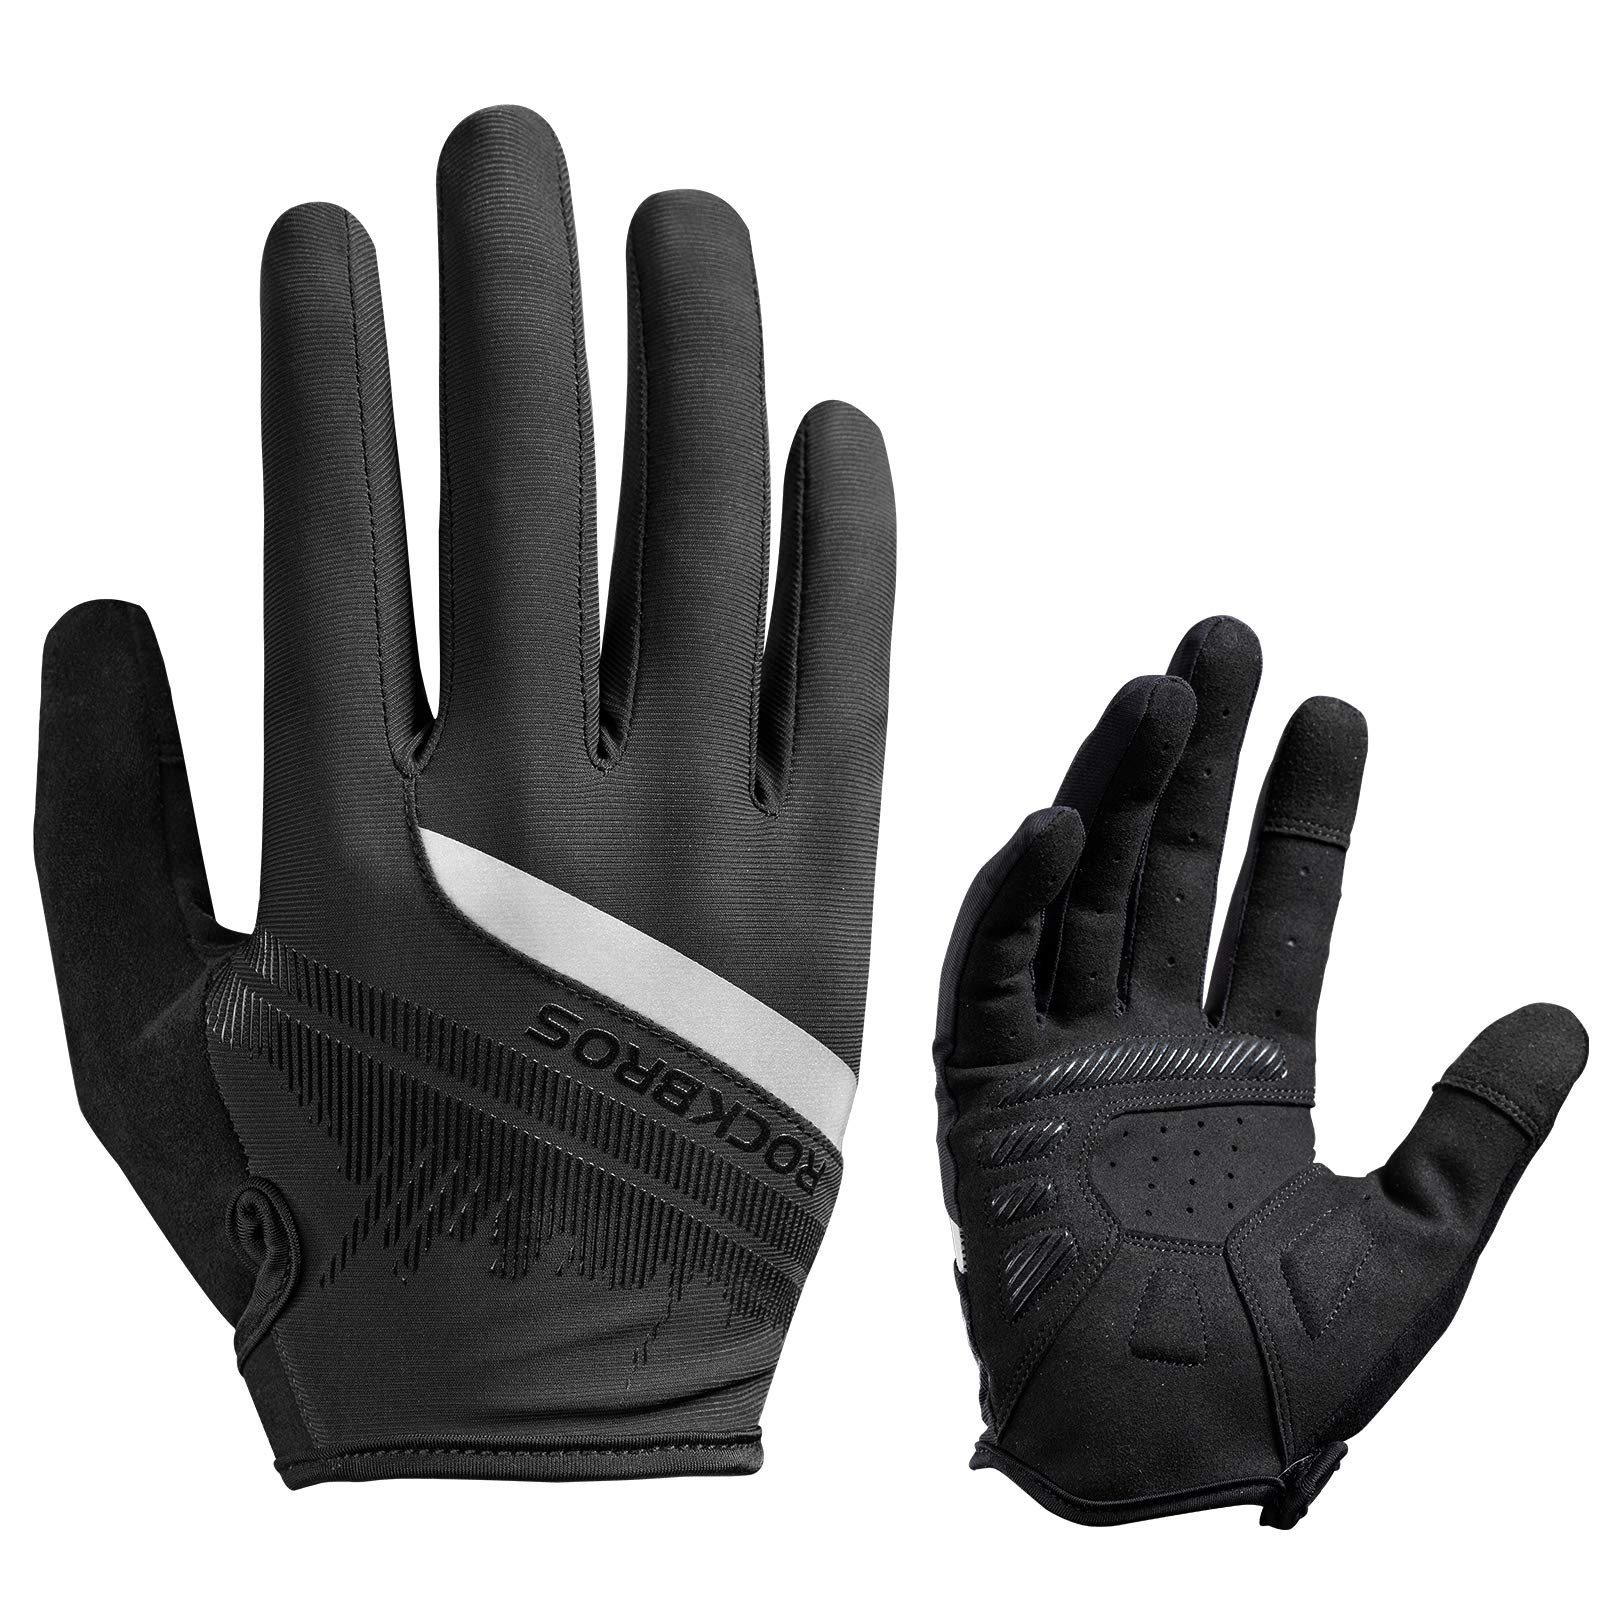 ROCKBROS Bike Gloves Mens Cycling Gloves Touch Screen Anti-Slip MTB Road Biking Gloves Breathable Full Finger Bicycle Gloves for Outdoor Sports